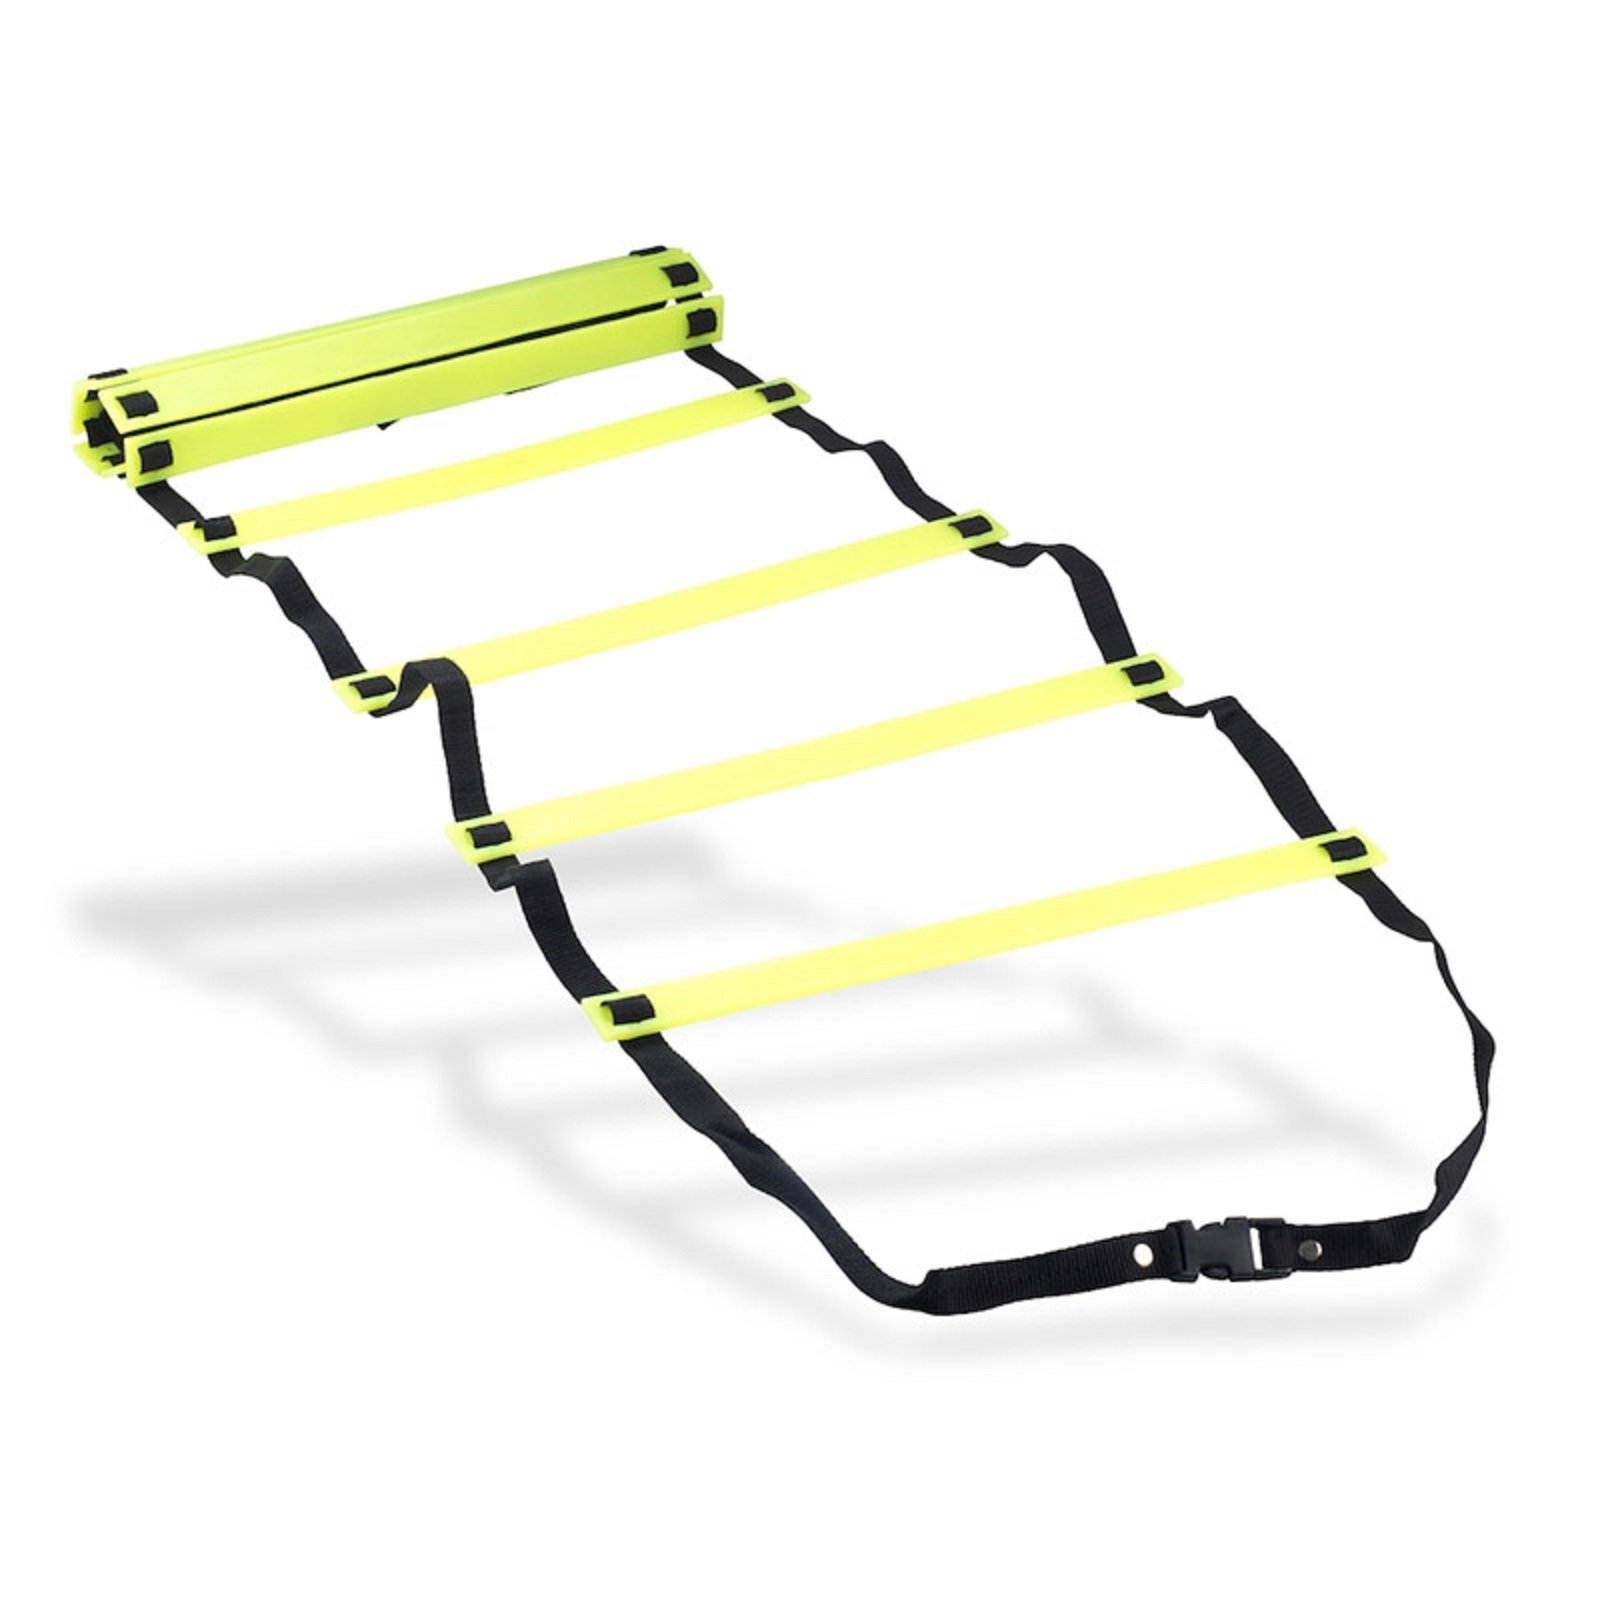 Sahni Sports Super Speed Agility Ladder for Track and Field Sports Training 4 Meter product image